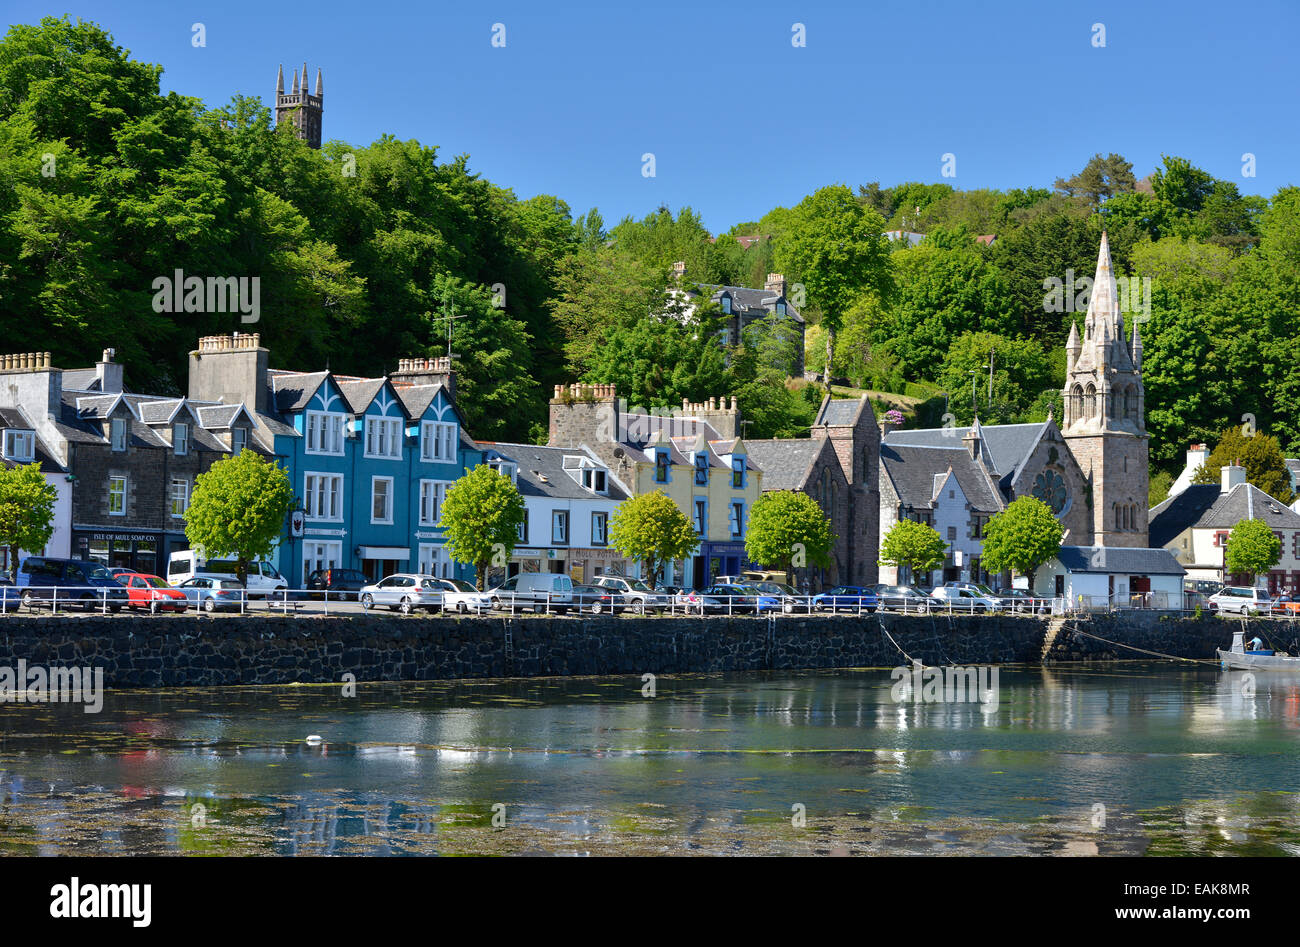 Houses on the harbour, Tobermory, Isle of Mull, Scotland, United Kingdom - Stock Image